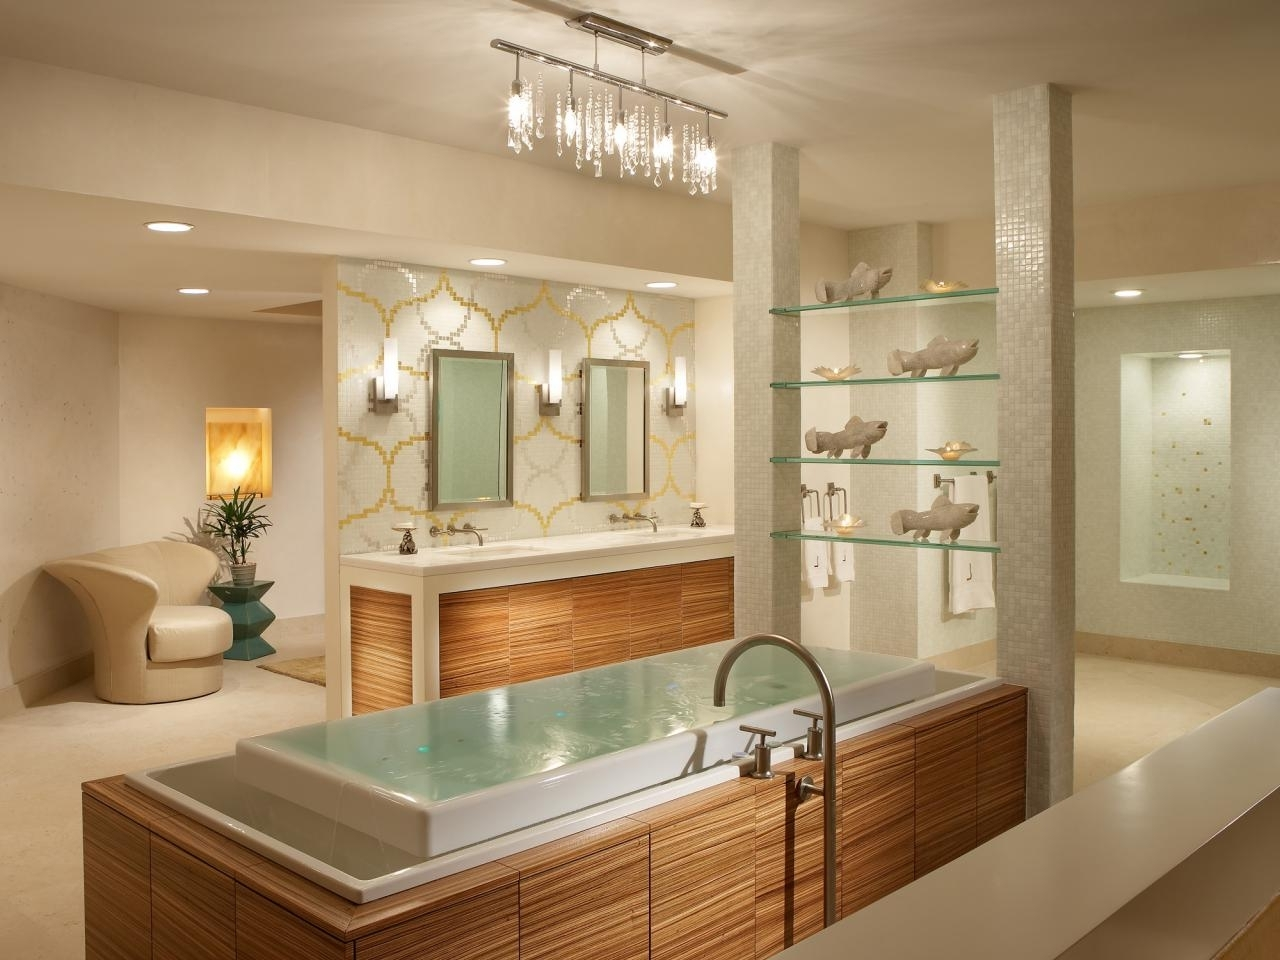 Amusing Modern Bathroom Lighting Large Sink With A Small Chandelier Throughout Well Known Chandelier Bathroom Lighting (Gallery 13 of 20)